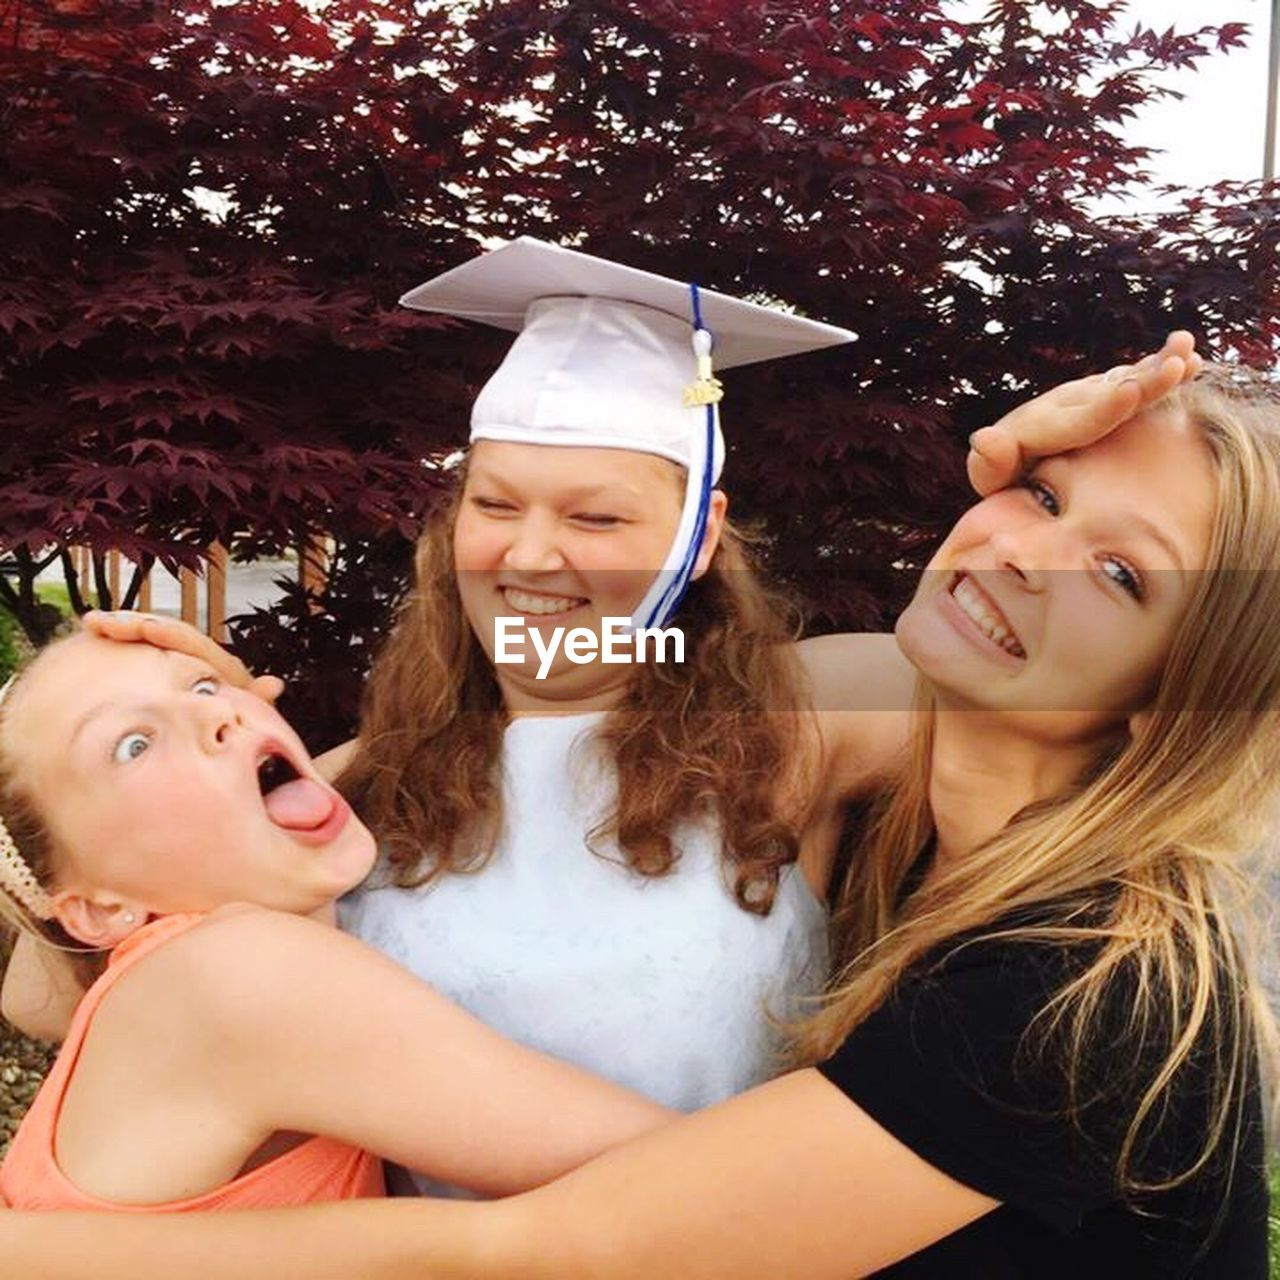 graduation, education, mortarboard, young adult, young women, university student, celebration, two people, togetherness, happiness, university, smiling, looking at camera, life events, cheerful, real people, friendship, day, portrait, outdoors, tree, blond hair, close-up, adult, people, adults only